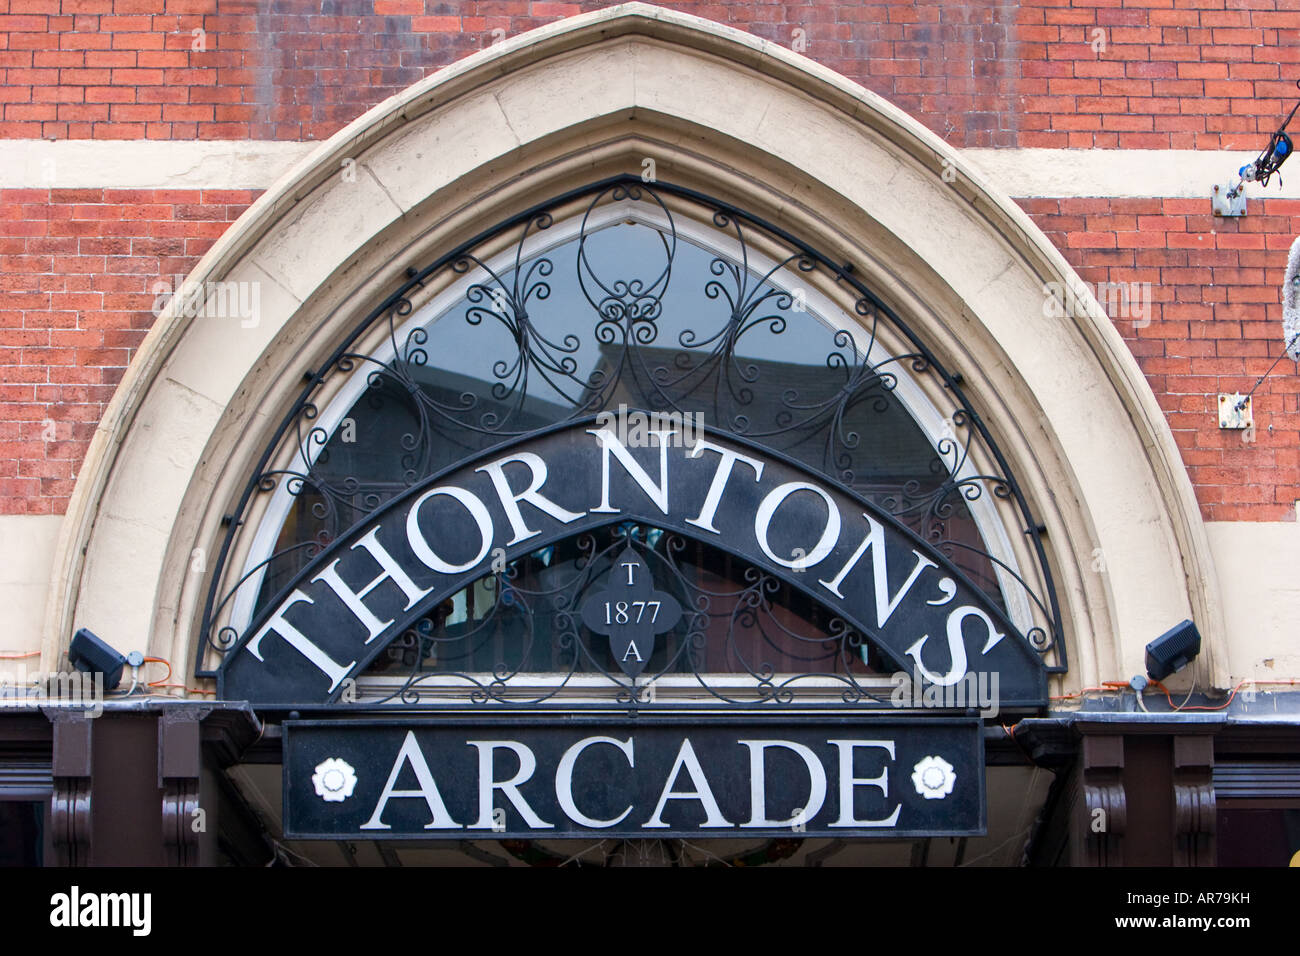 Entrance sign to Thornton's Arcade in Leeds UK December 12 2007 - Stock Image